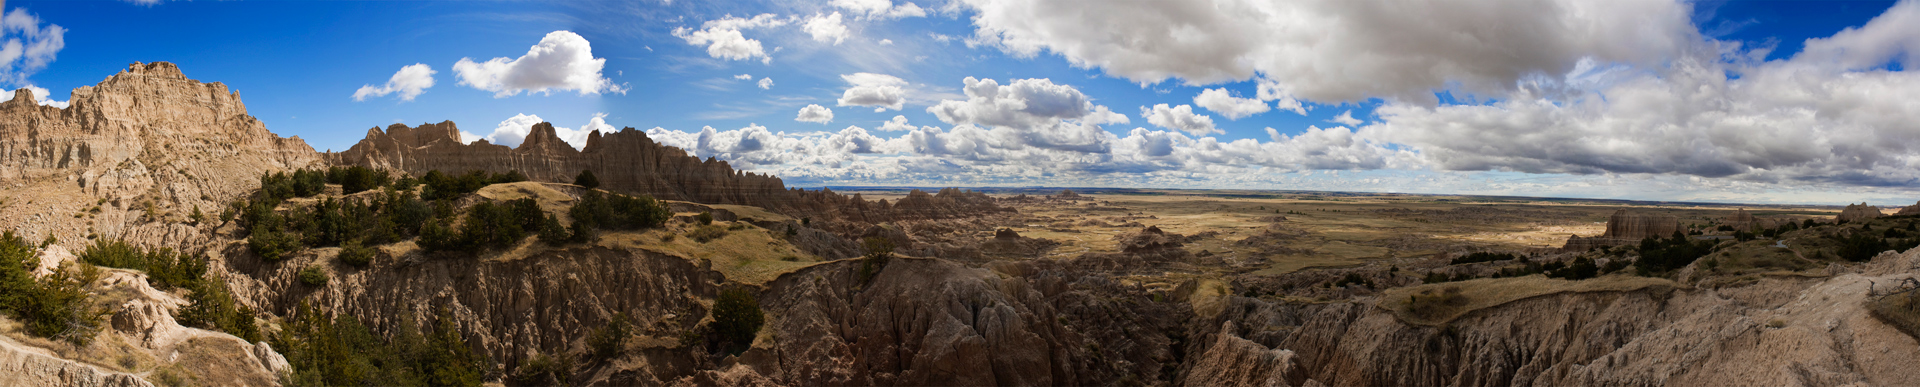 Badlands National Park Panoramic